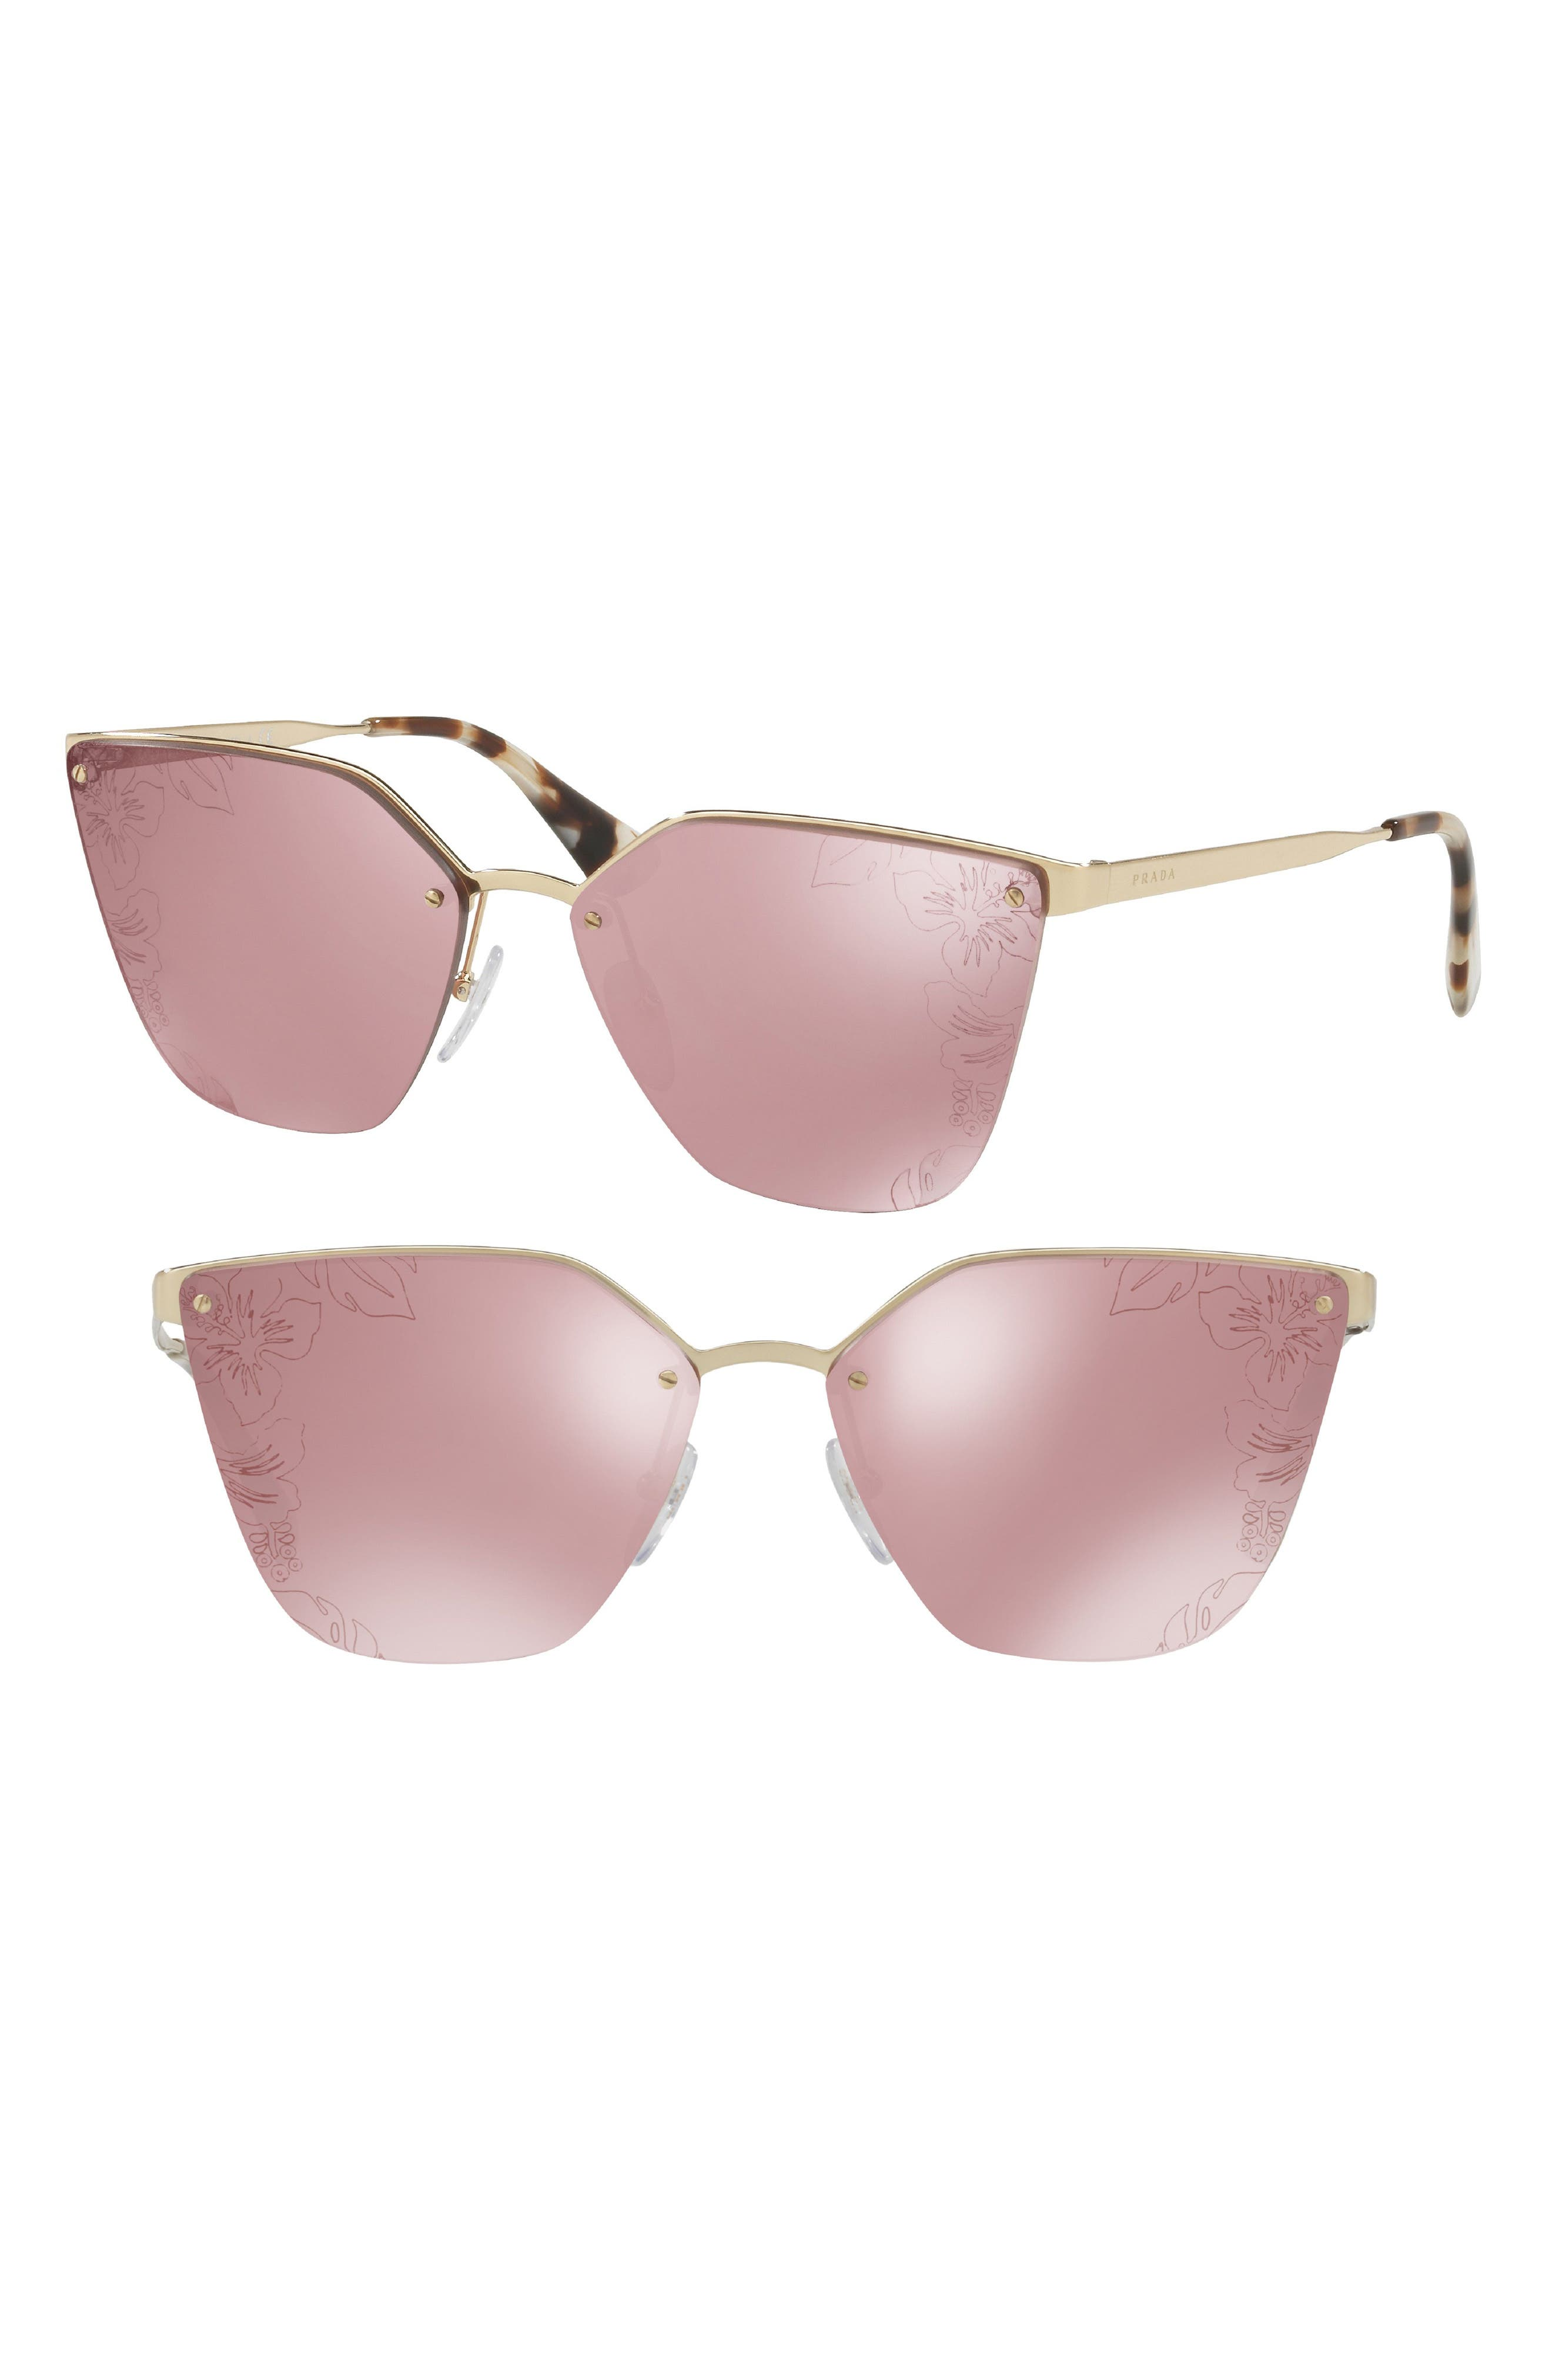 Cinéma 63mm Oversize Rimless Sunglasses,                         Main,                         color, Pink